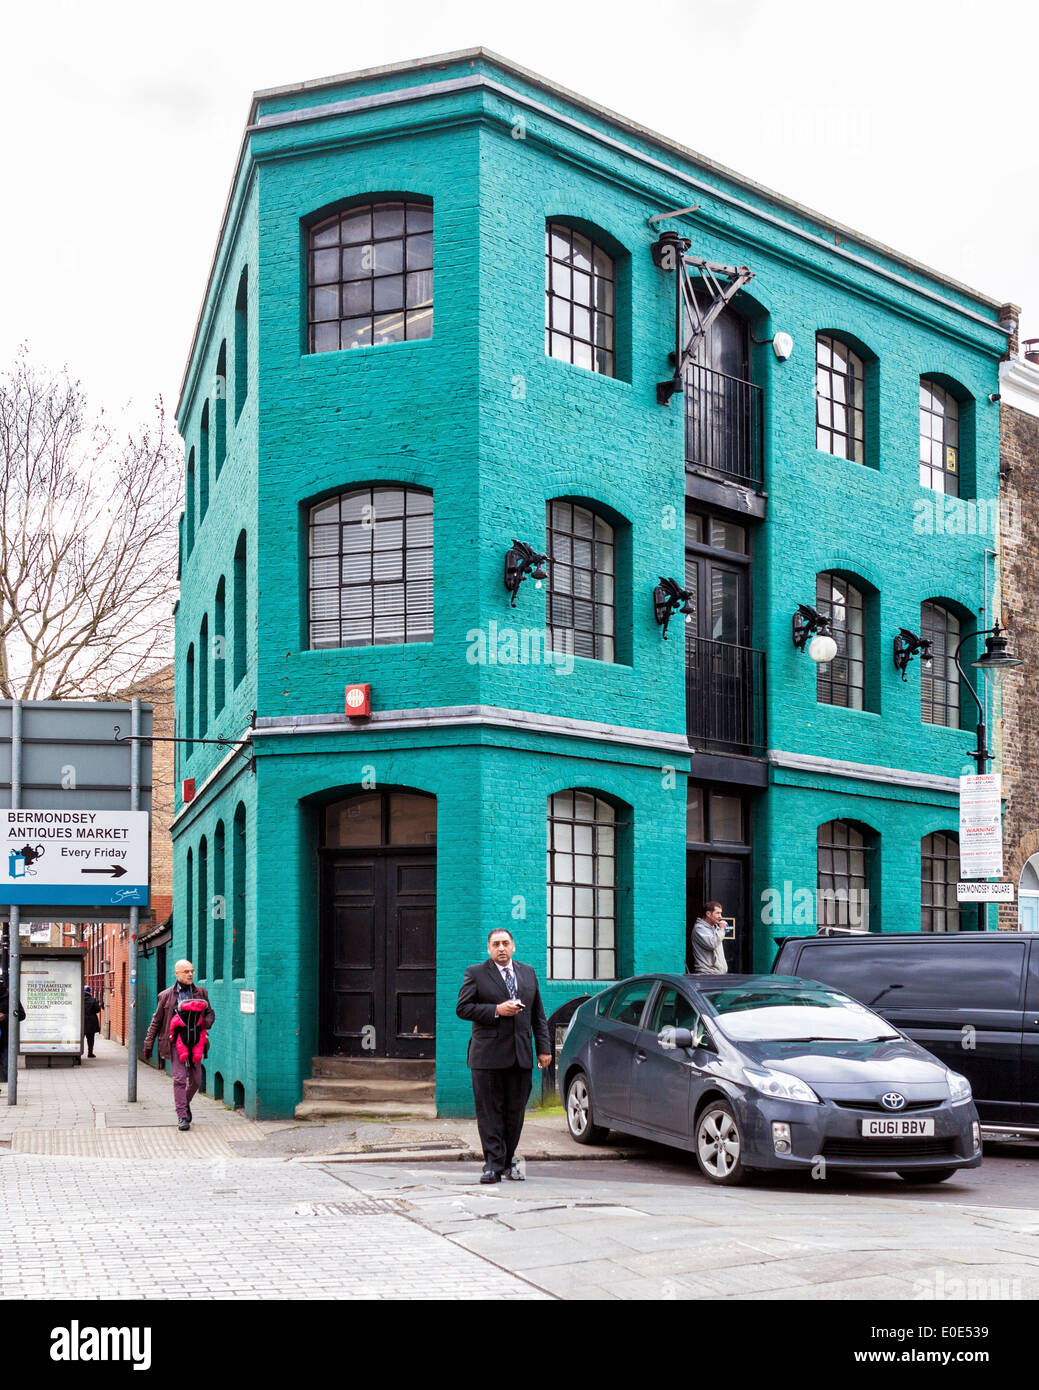 Urban living - Typical building converted to modern flats  in Bermonsey square, London, SE1 - Stock Image